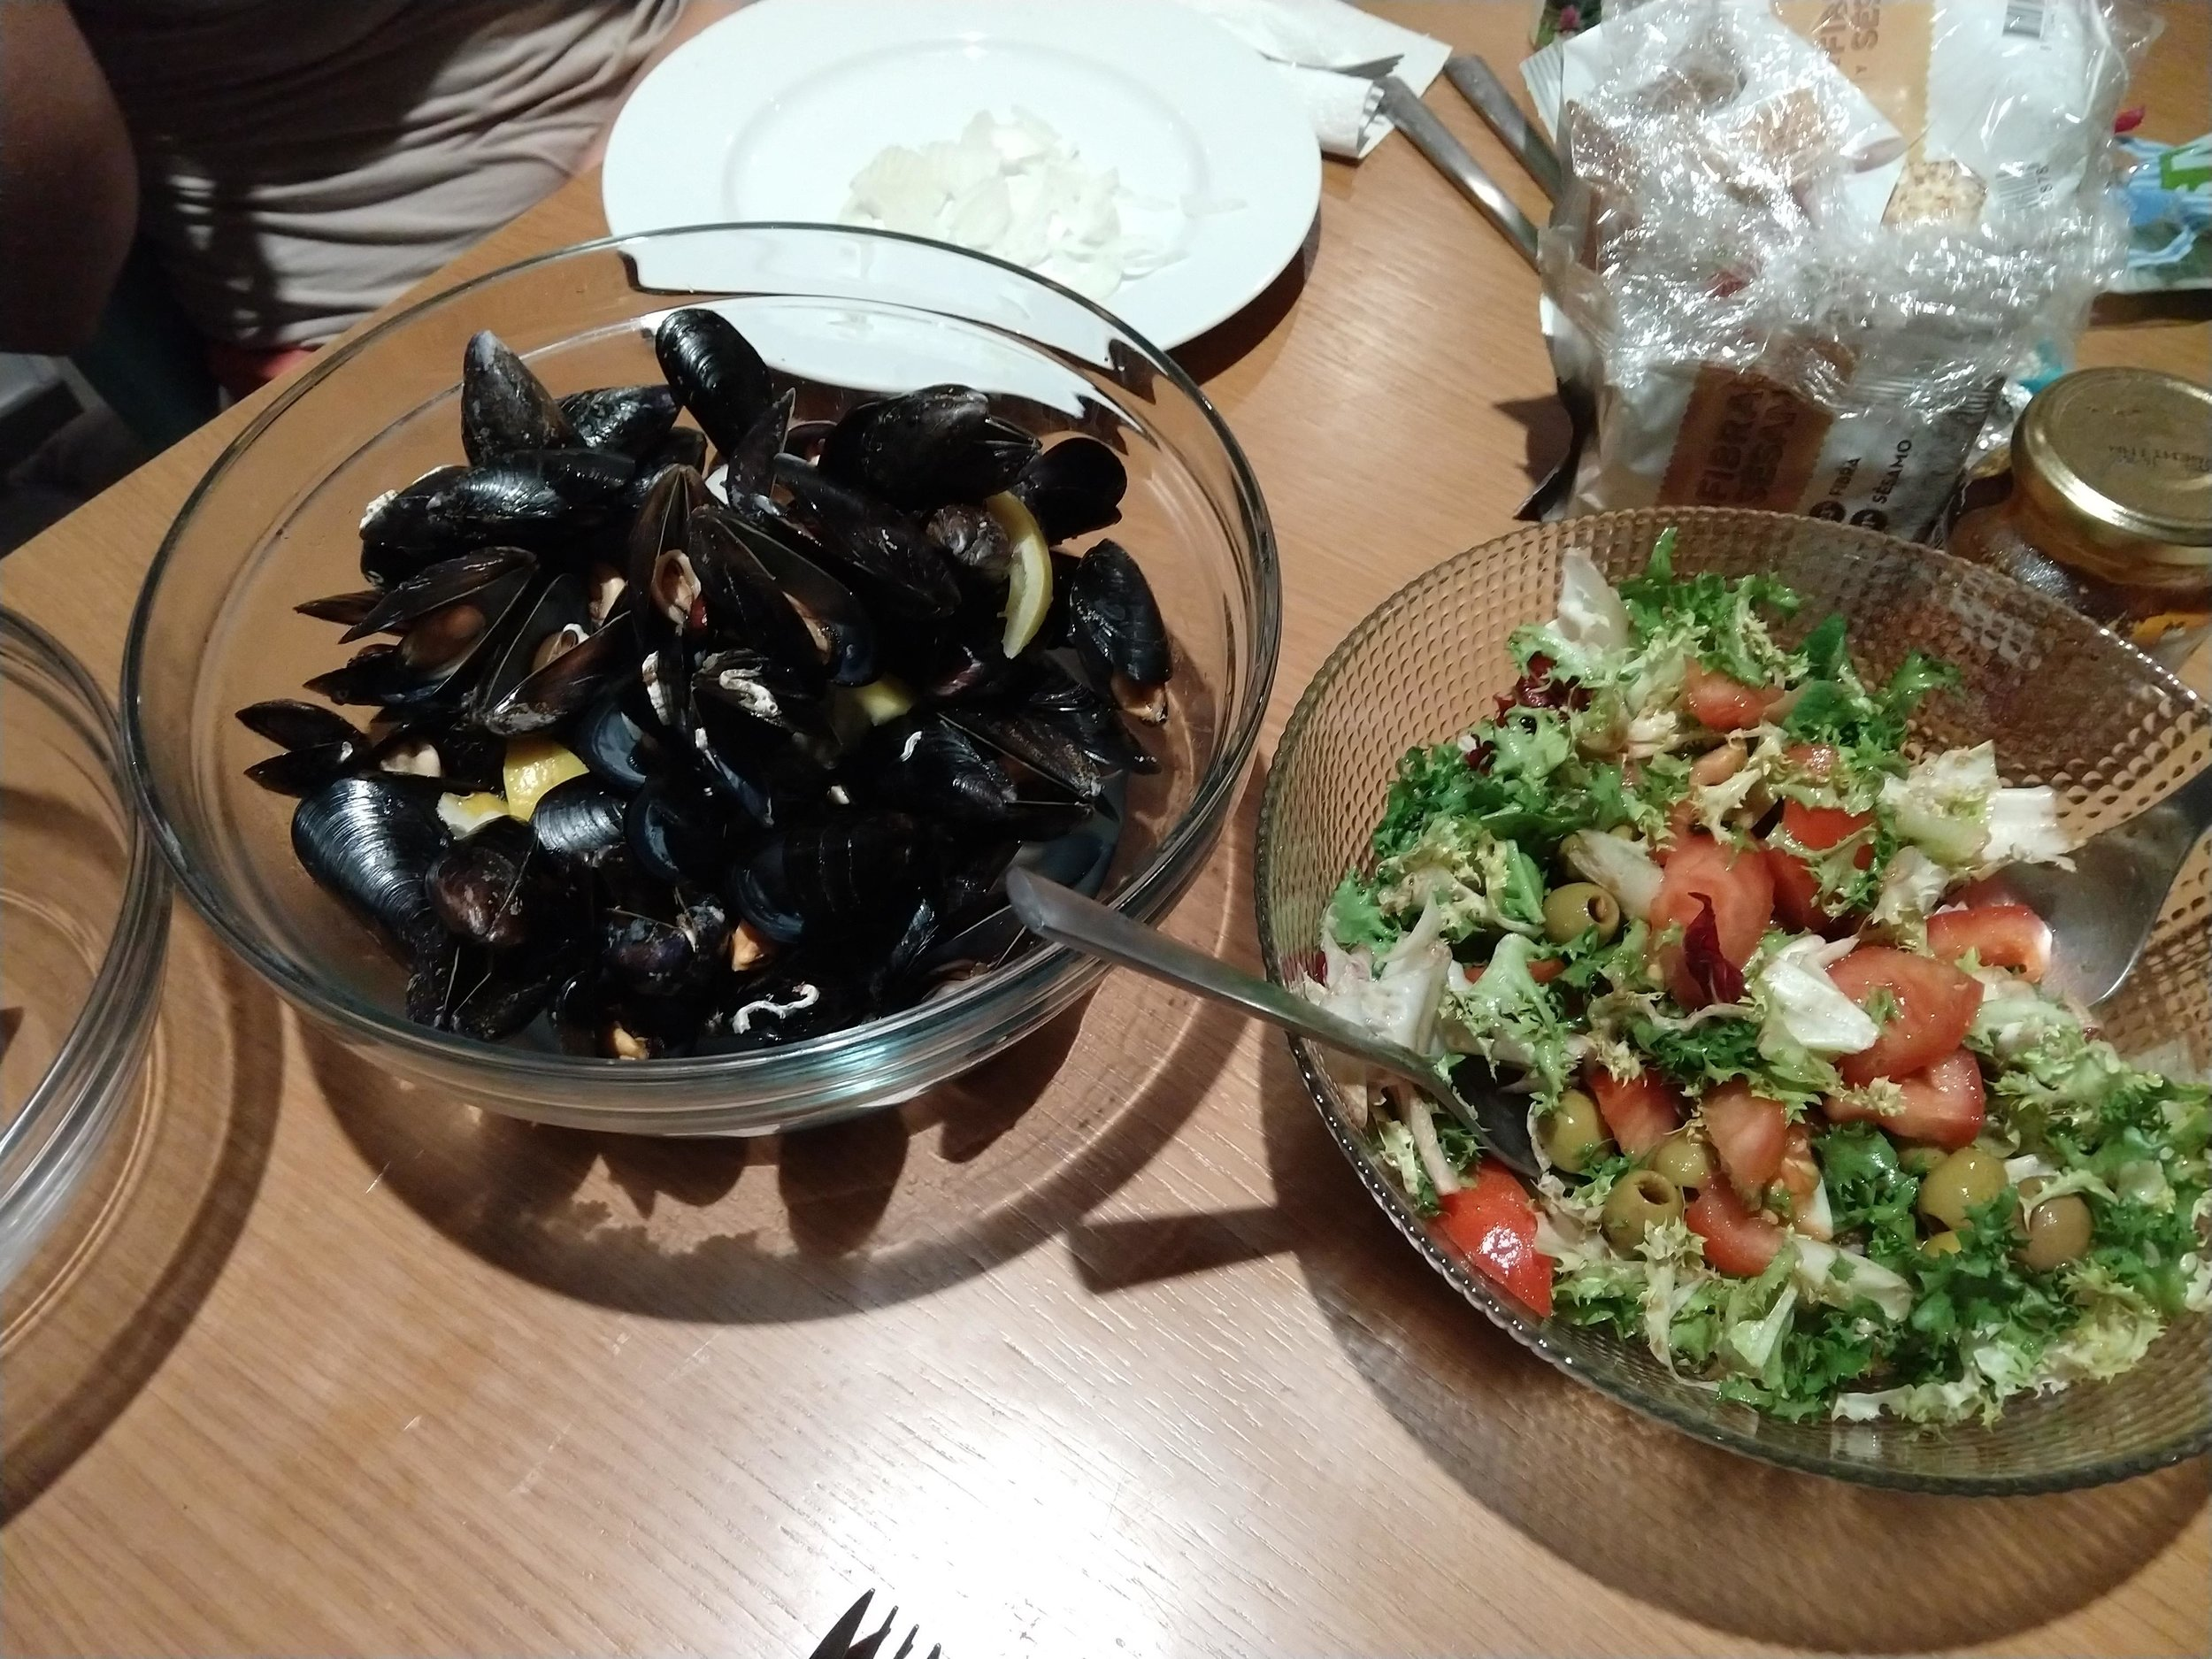 One night, my host's housemate shared her dinner with me: a simple meal of salad and simply cooked mussels.